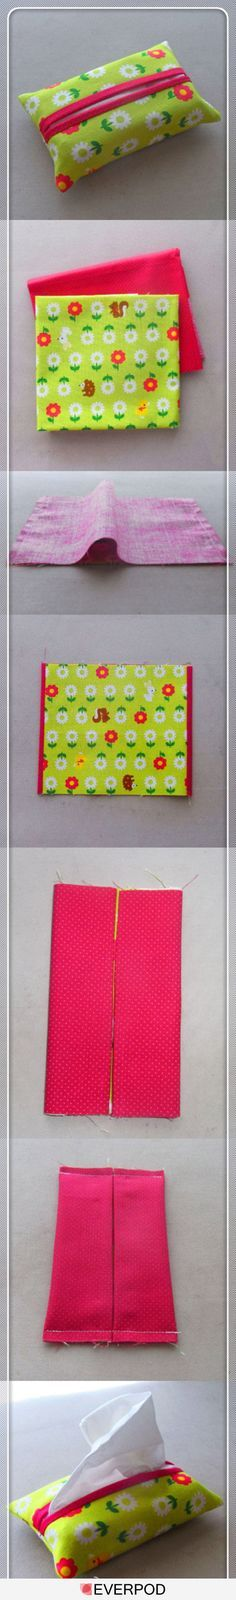 two scraps:  5.5 x 6.5 for outer fabric and 5.5 x 7.5 liner. Tried this and it is perfect. LAH